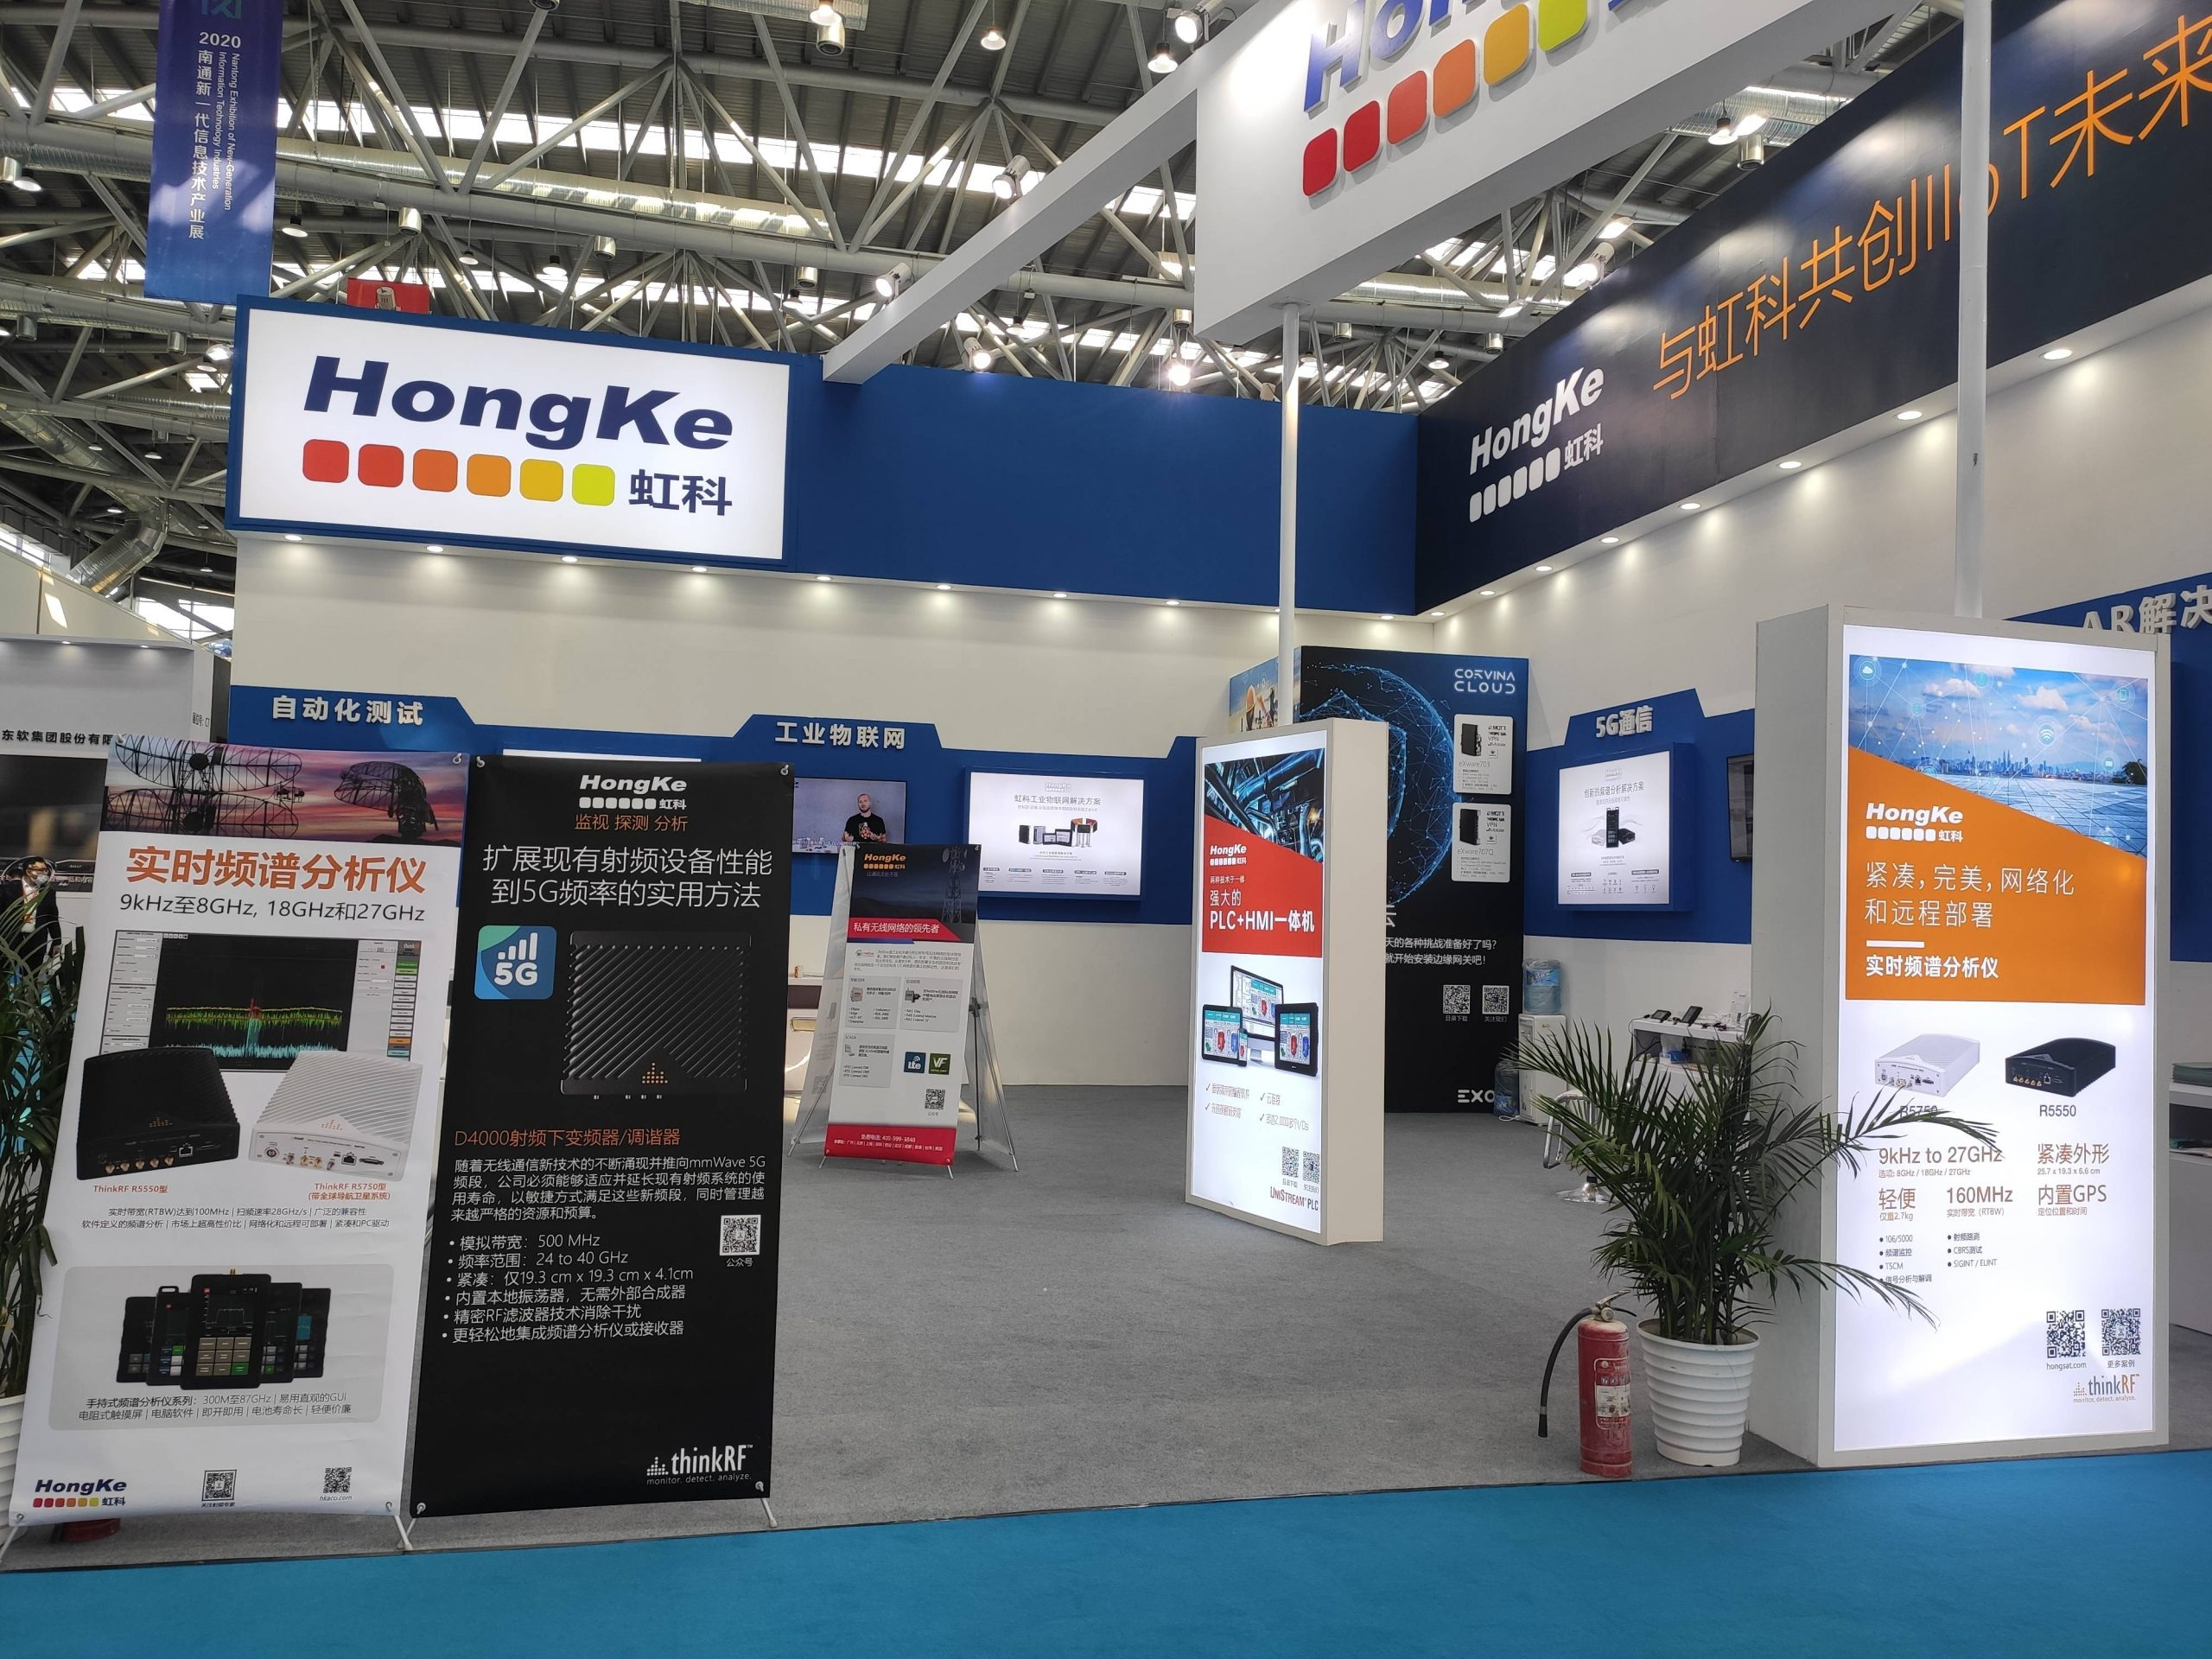 NanTong information exhibitions-Hongke-thinkRF Booth(1)